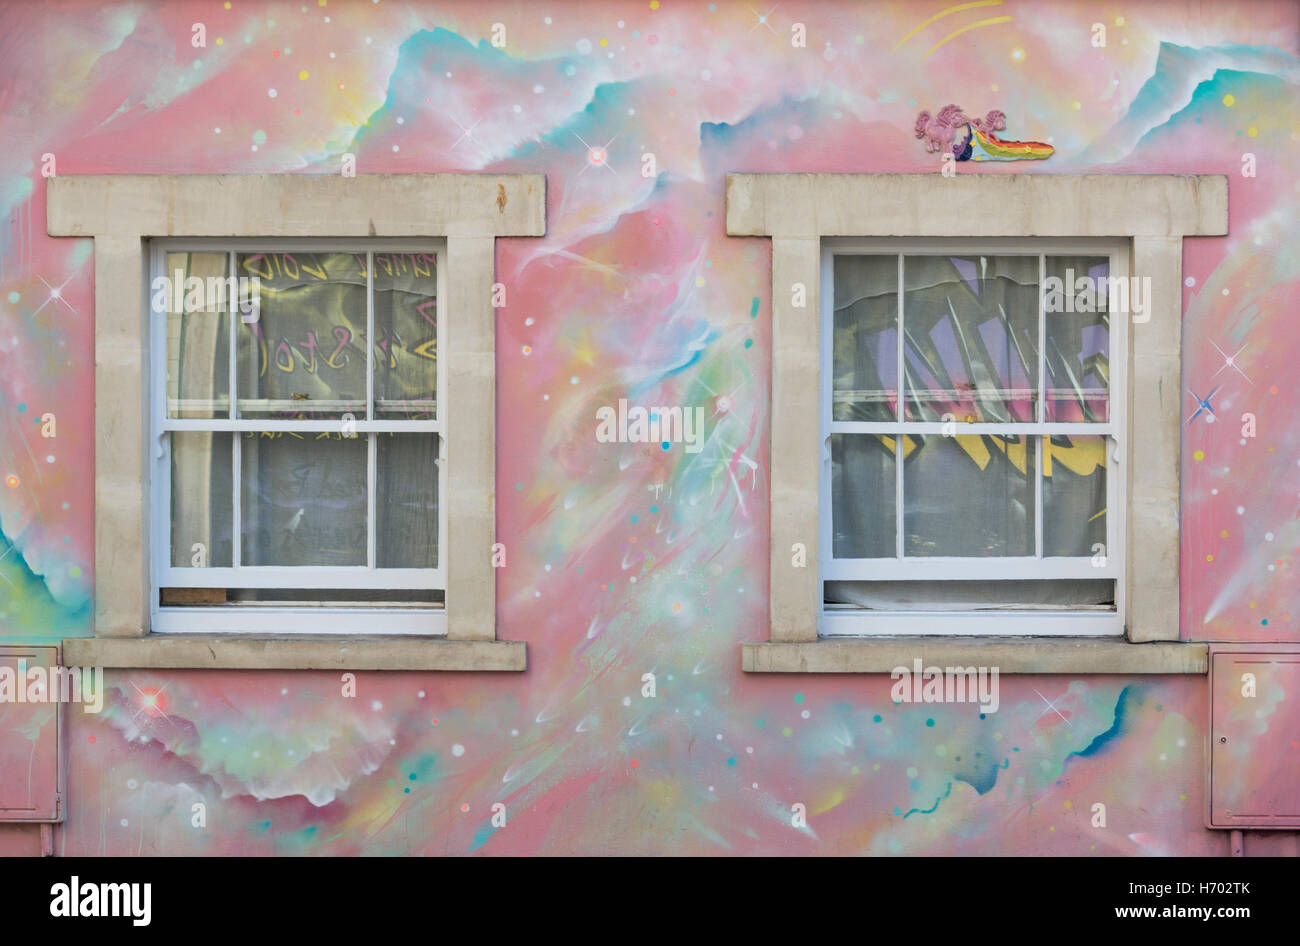 Unicorn wall murals images home wall decoration ideas two windows surrounded by a rainbow painted wall mural with two windows surrounded by a rainbow amipublicfo Image collections